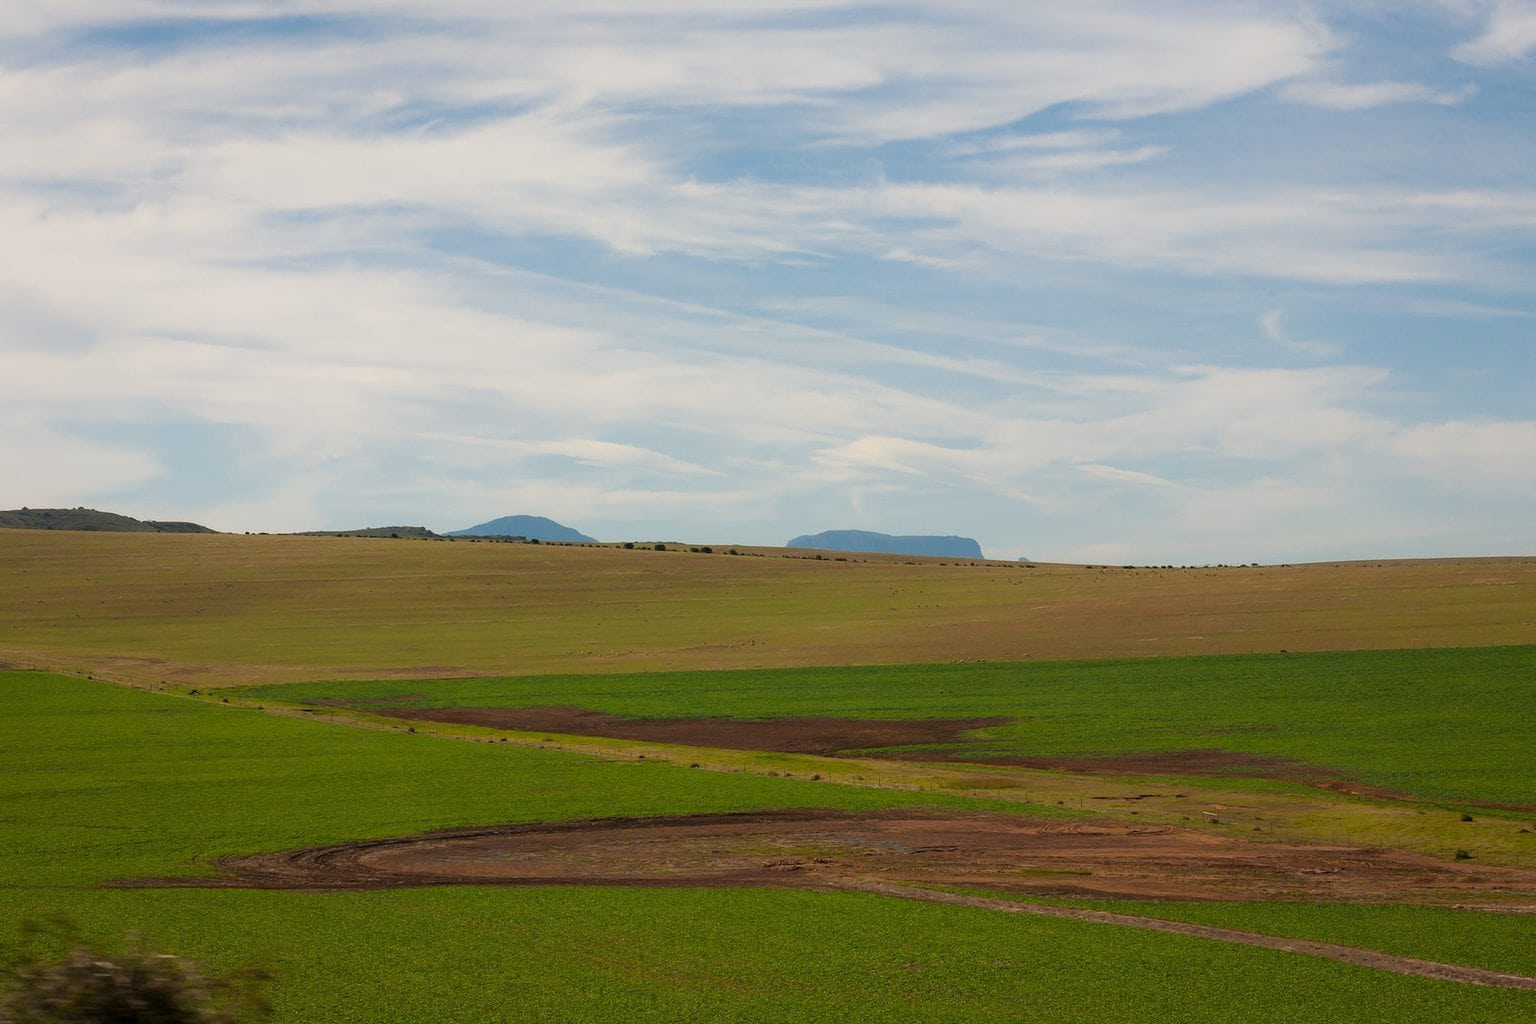 Scenery along the Garden Route